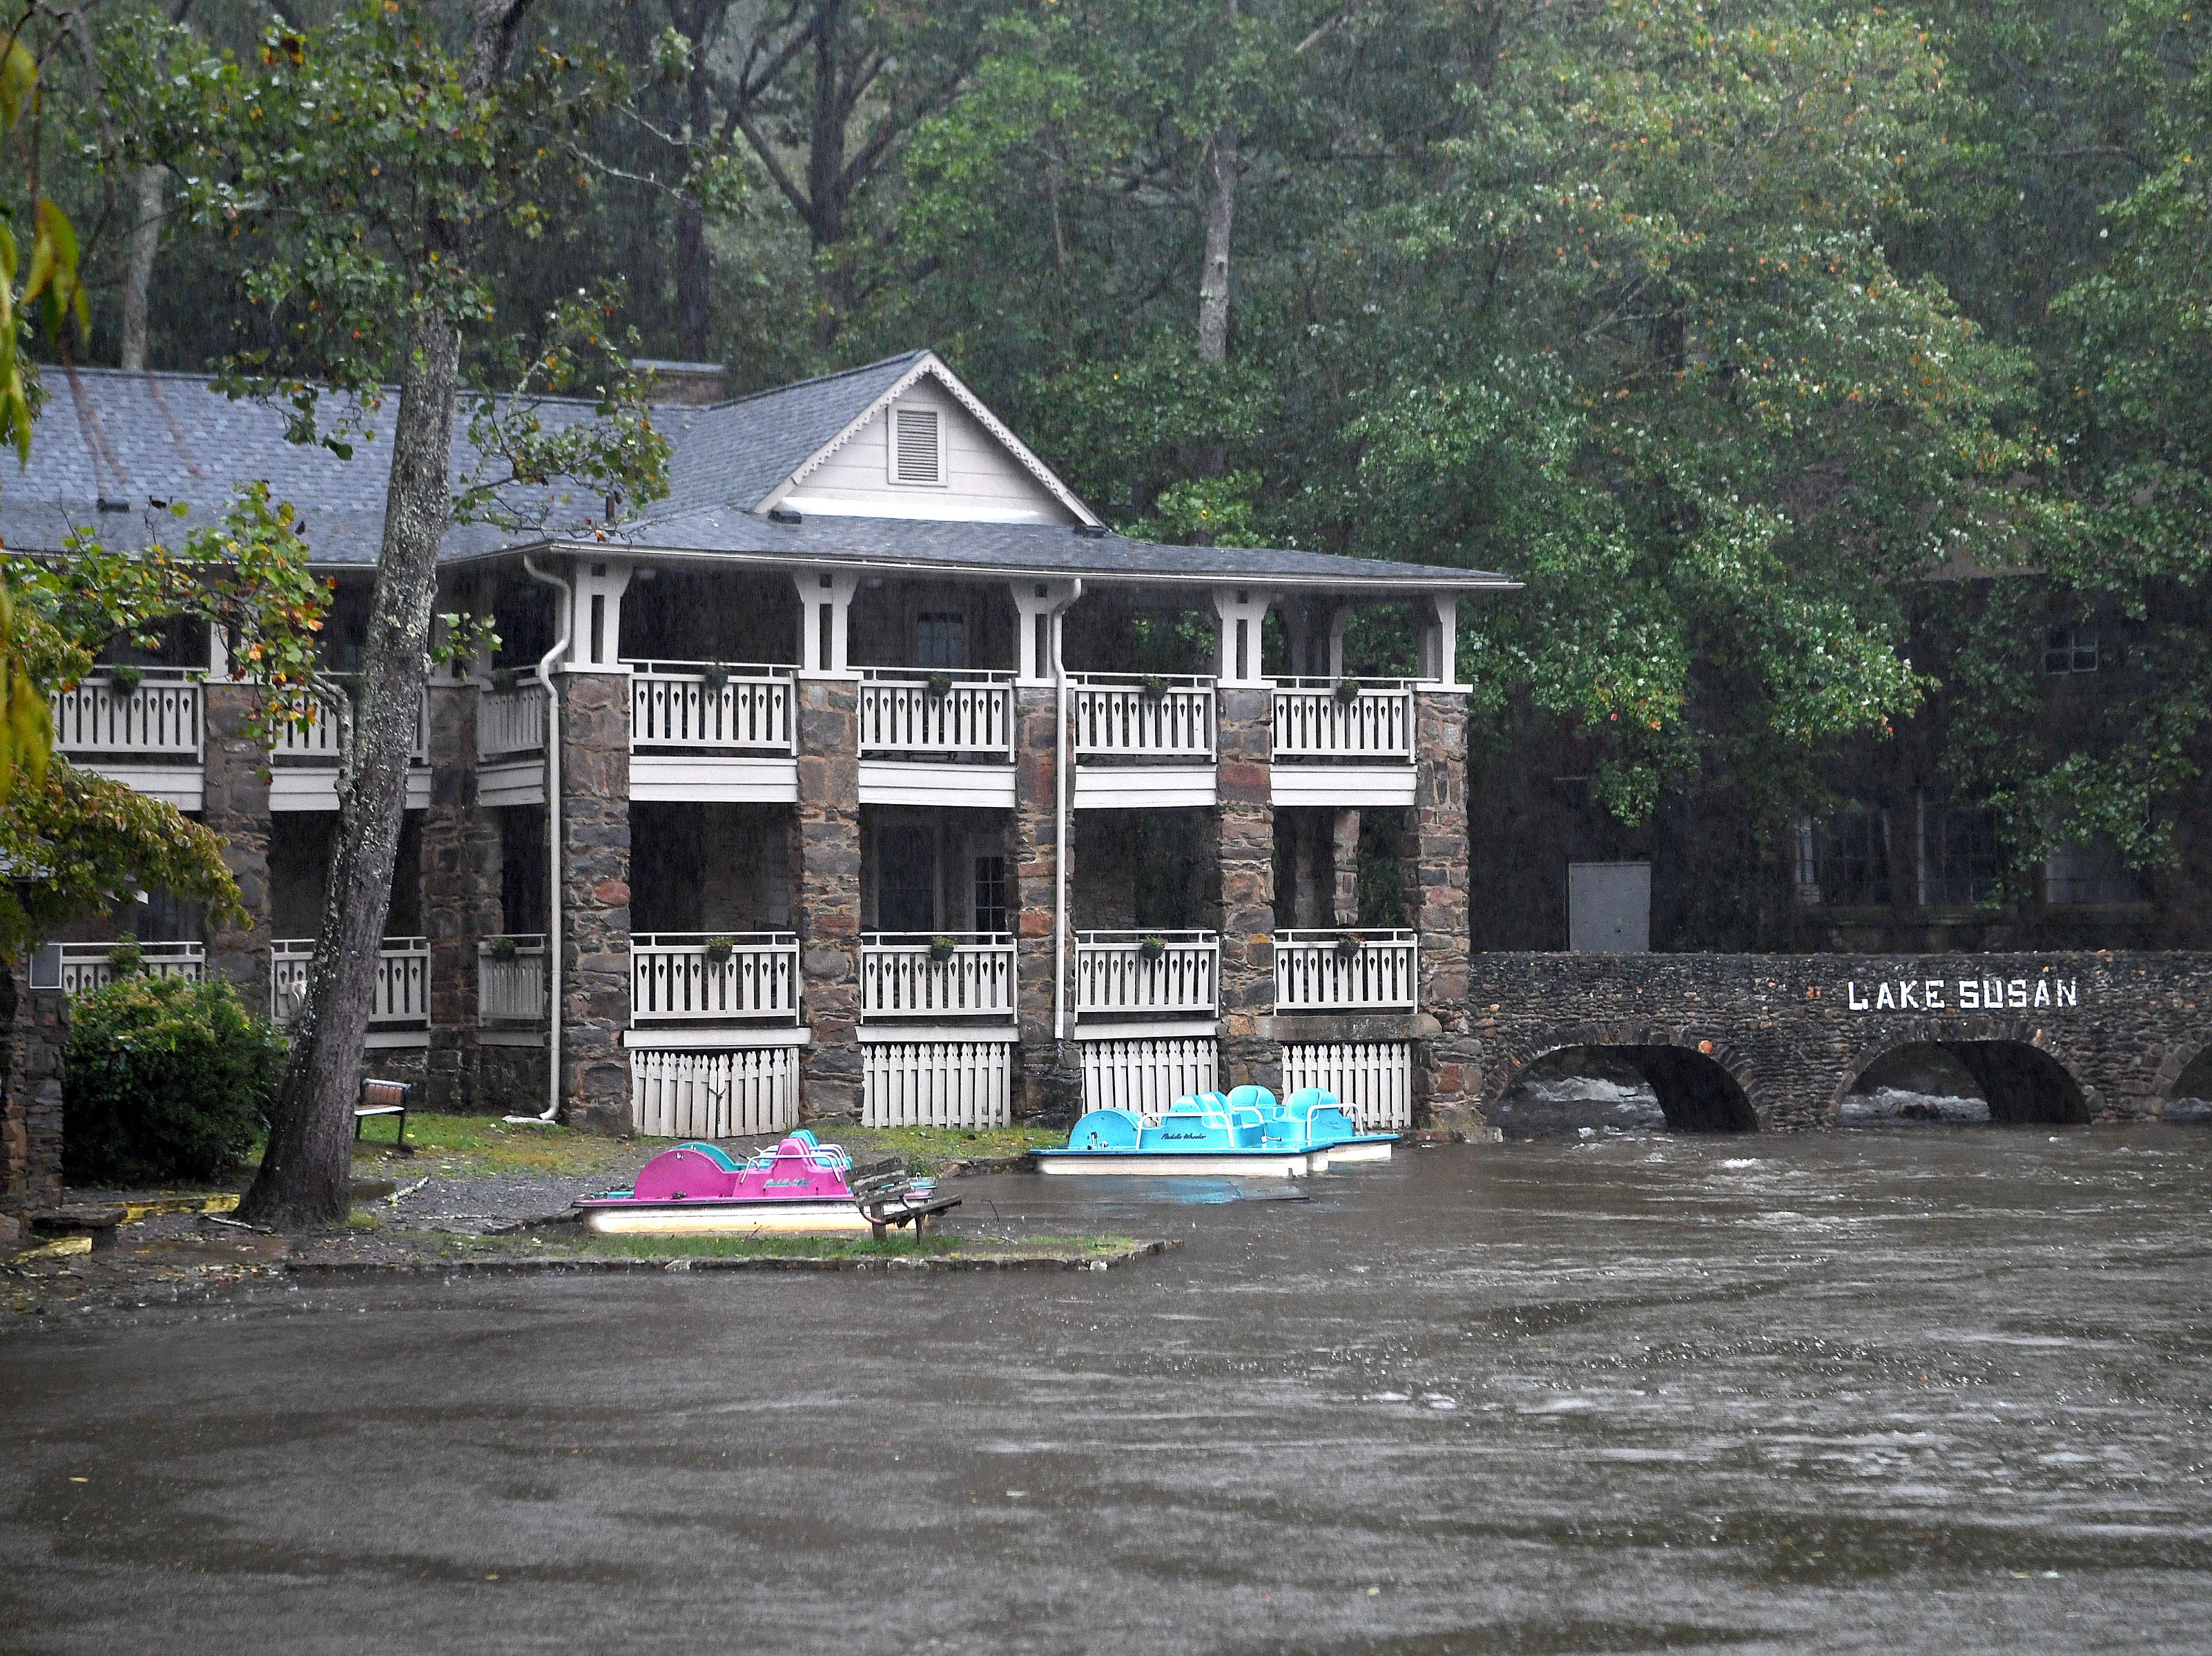 Lake Susan in Montreat rises close to the sidewalk as steady rain falls on Sept. 16, 2018.